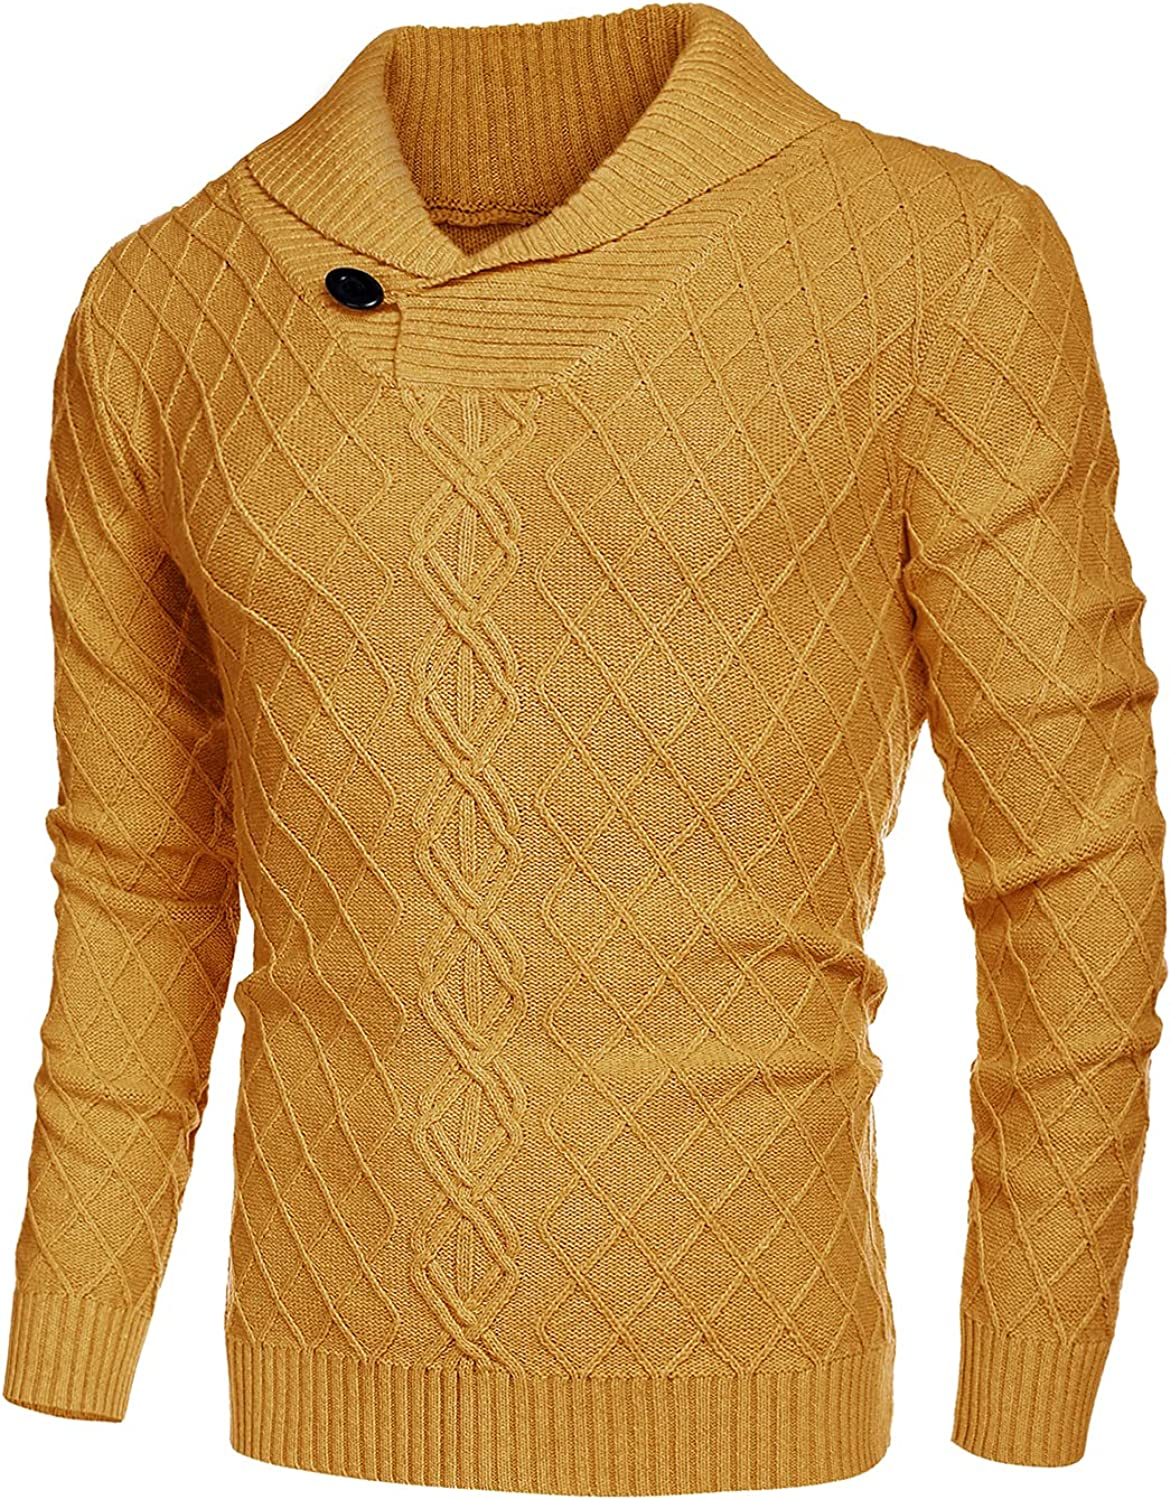 COOFANDY Men's Shawl Collar Sweater Cable Knitted Pullover Sweaters Fall Winter Casual Patterned Sweater